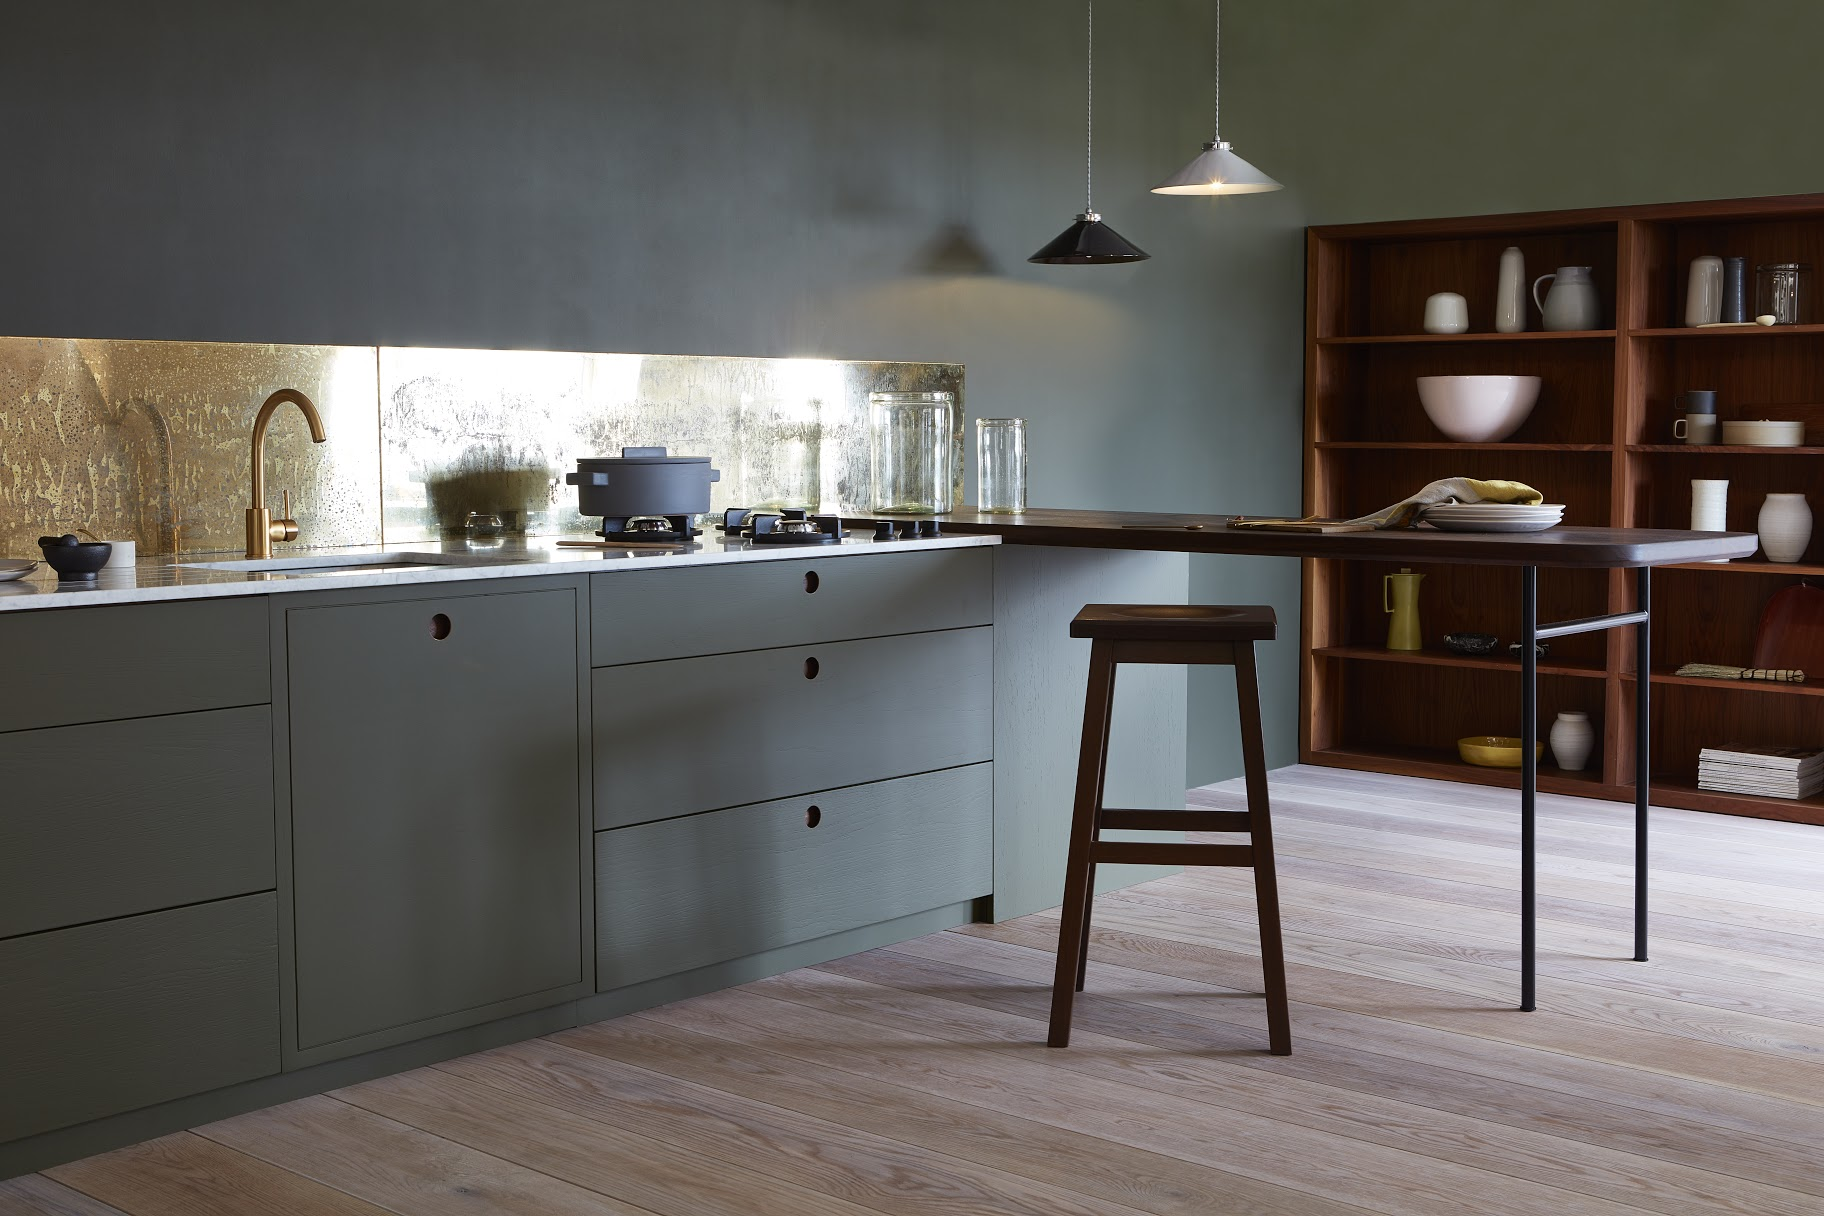 Customise Your Kitchen Cabinets With Bespoke Fronts By Naked Doors Melanie Lissack Interiors